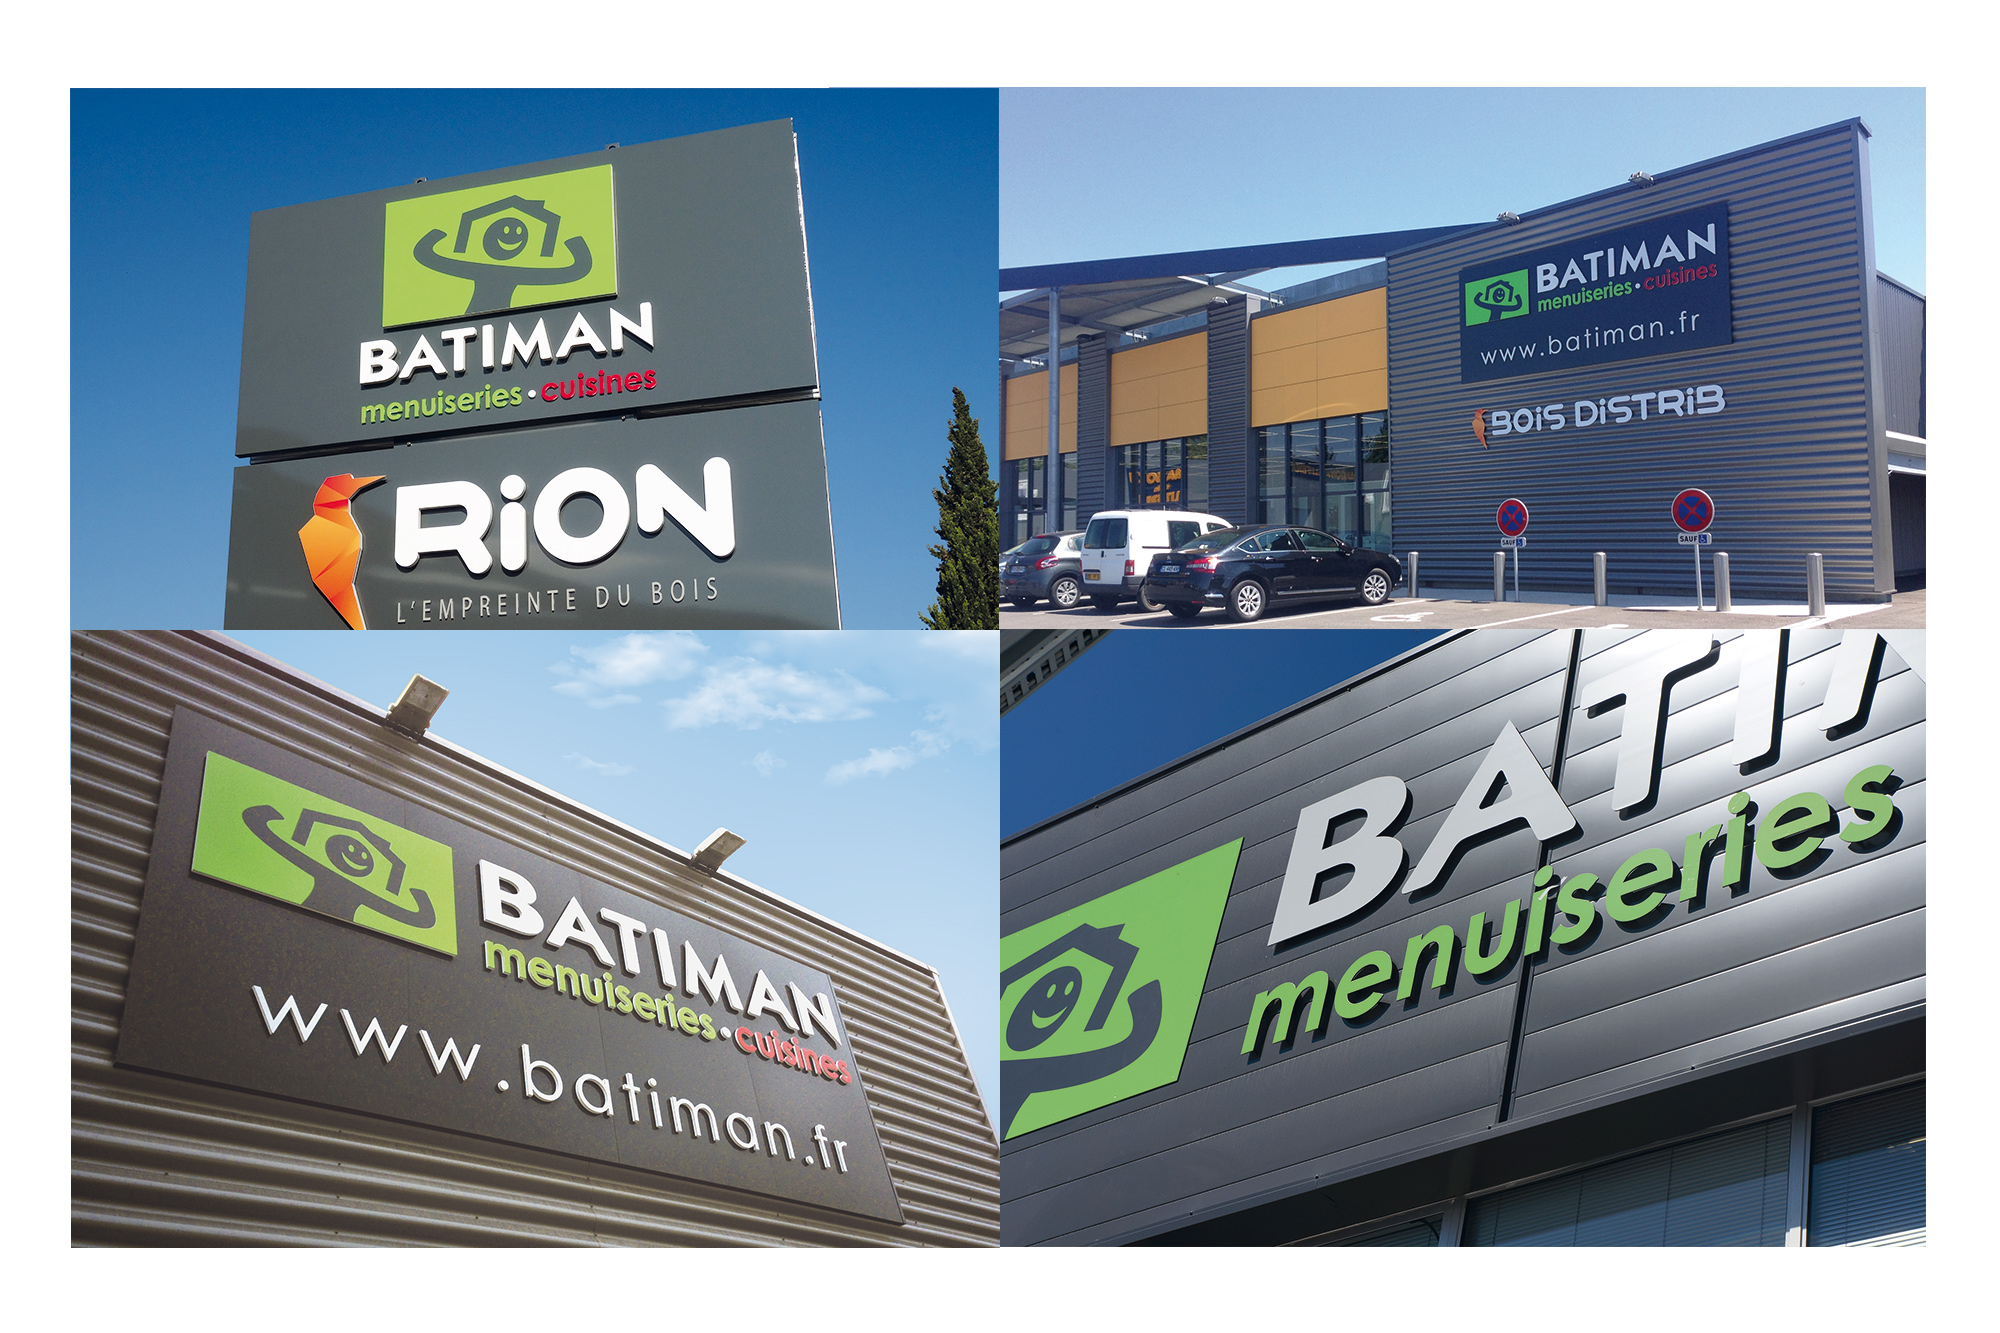 Batiman toulouse cool batiman toulouse with batiman for Garage marengo toulouse